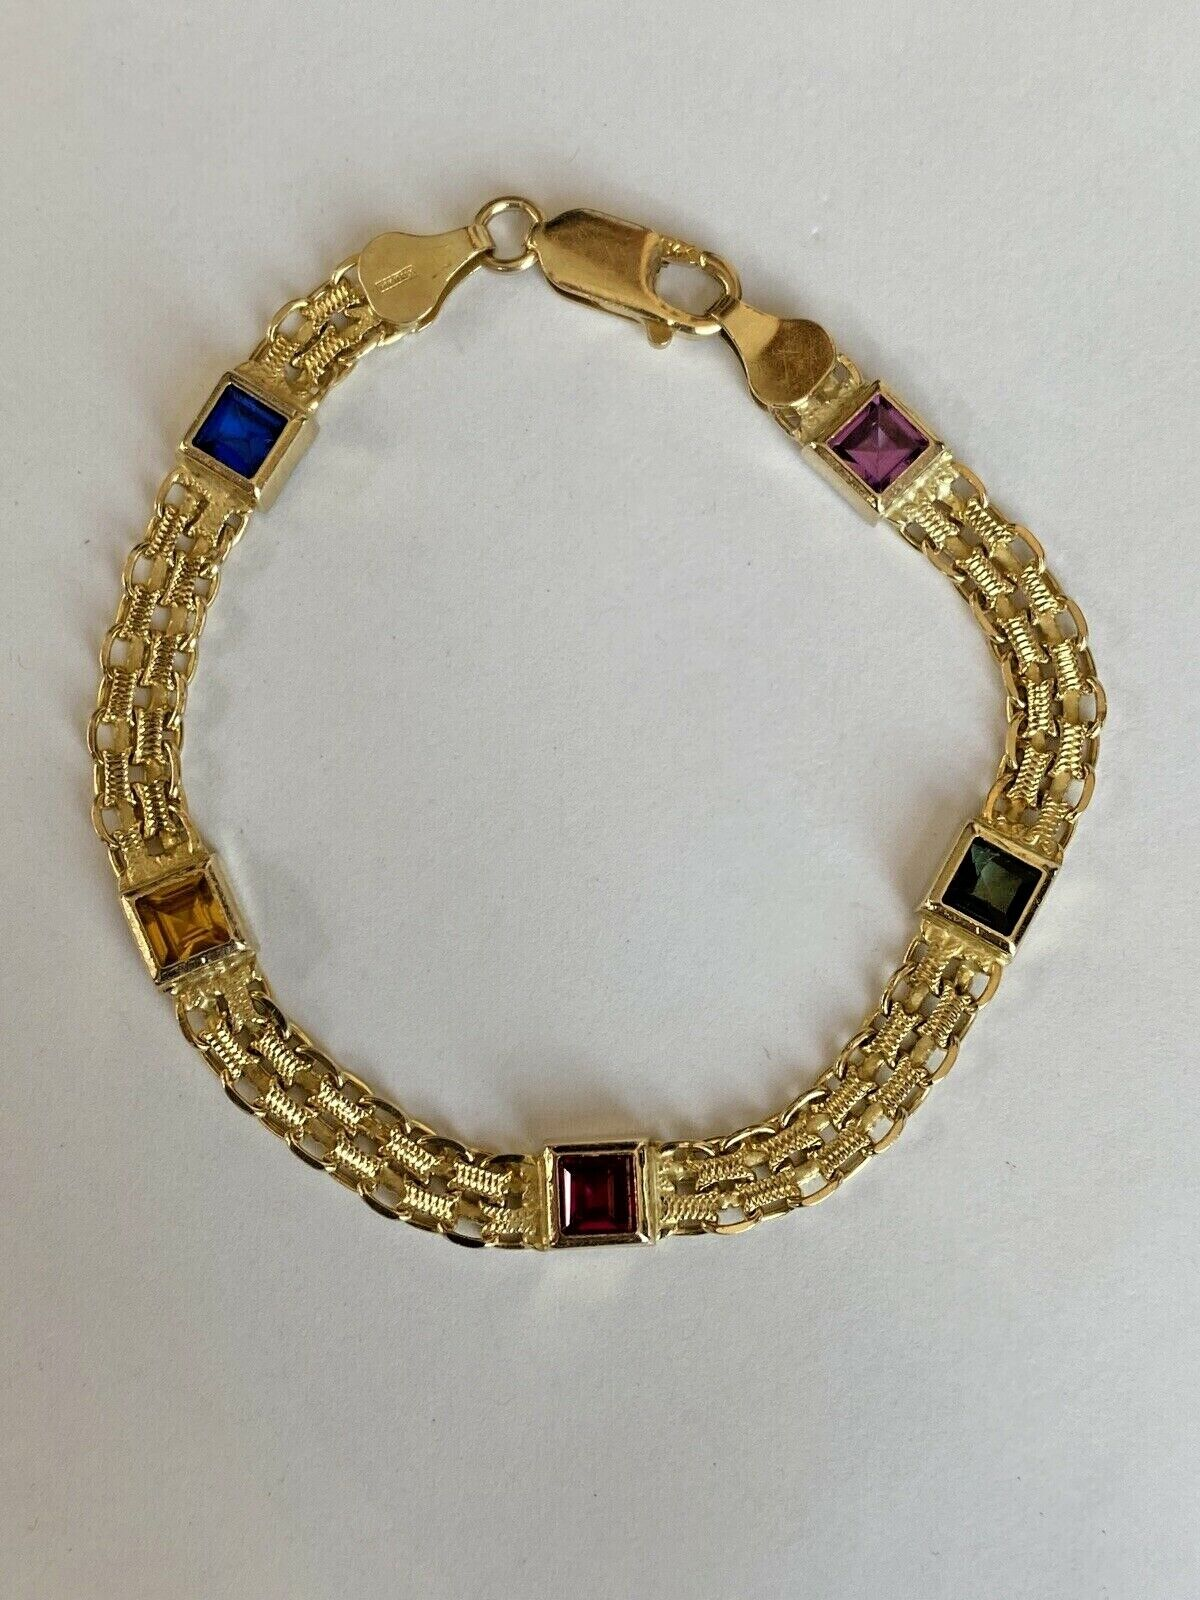 14k Yellow Gold w/ Colored Stones Women's Bracelet 6.3mm  7 1/4 Inches PRETTY!!! 3